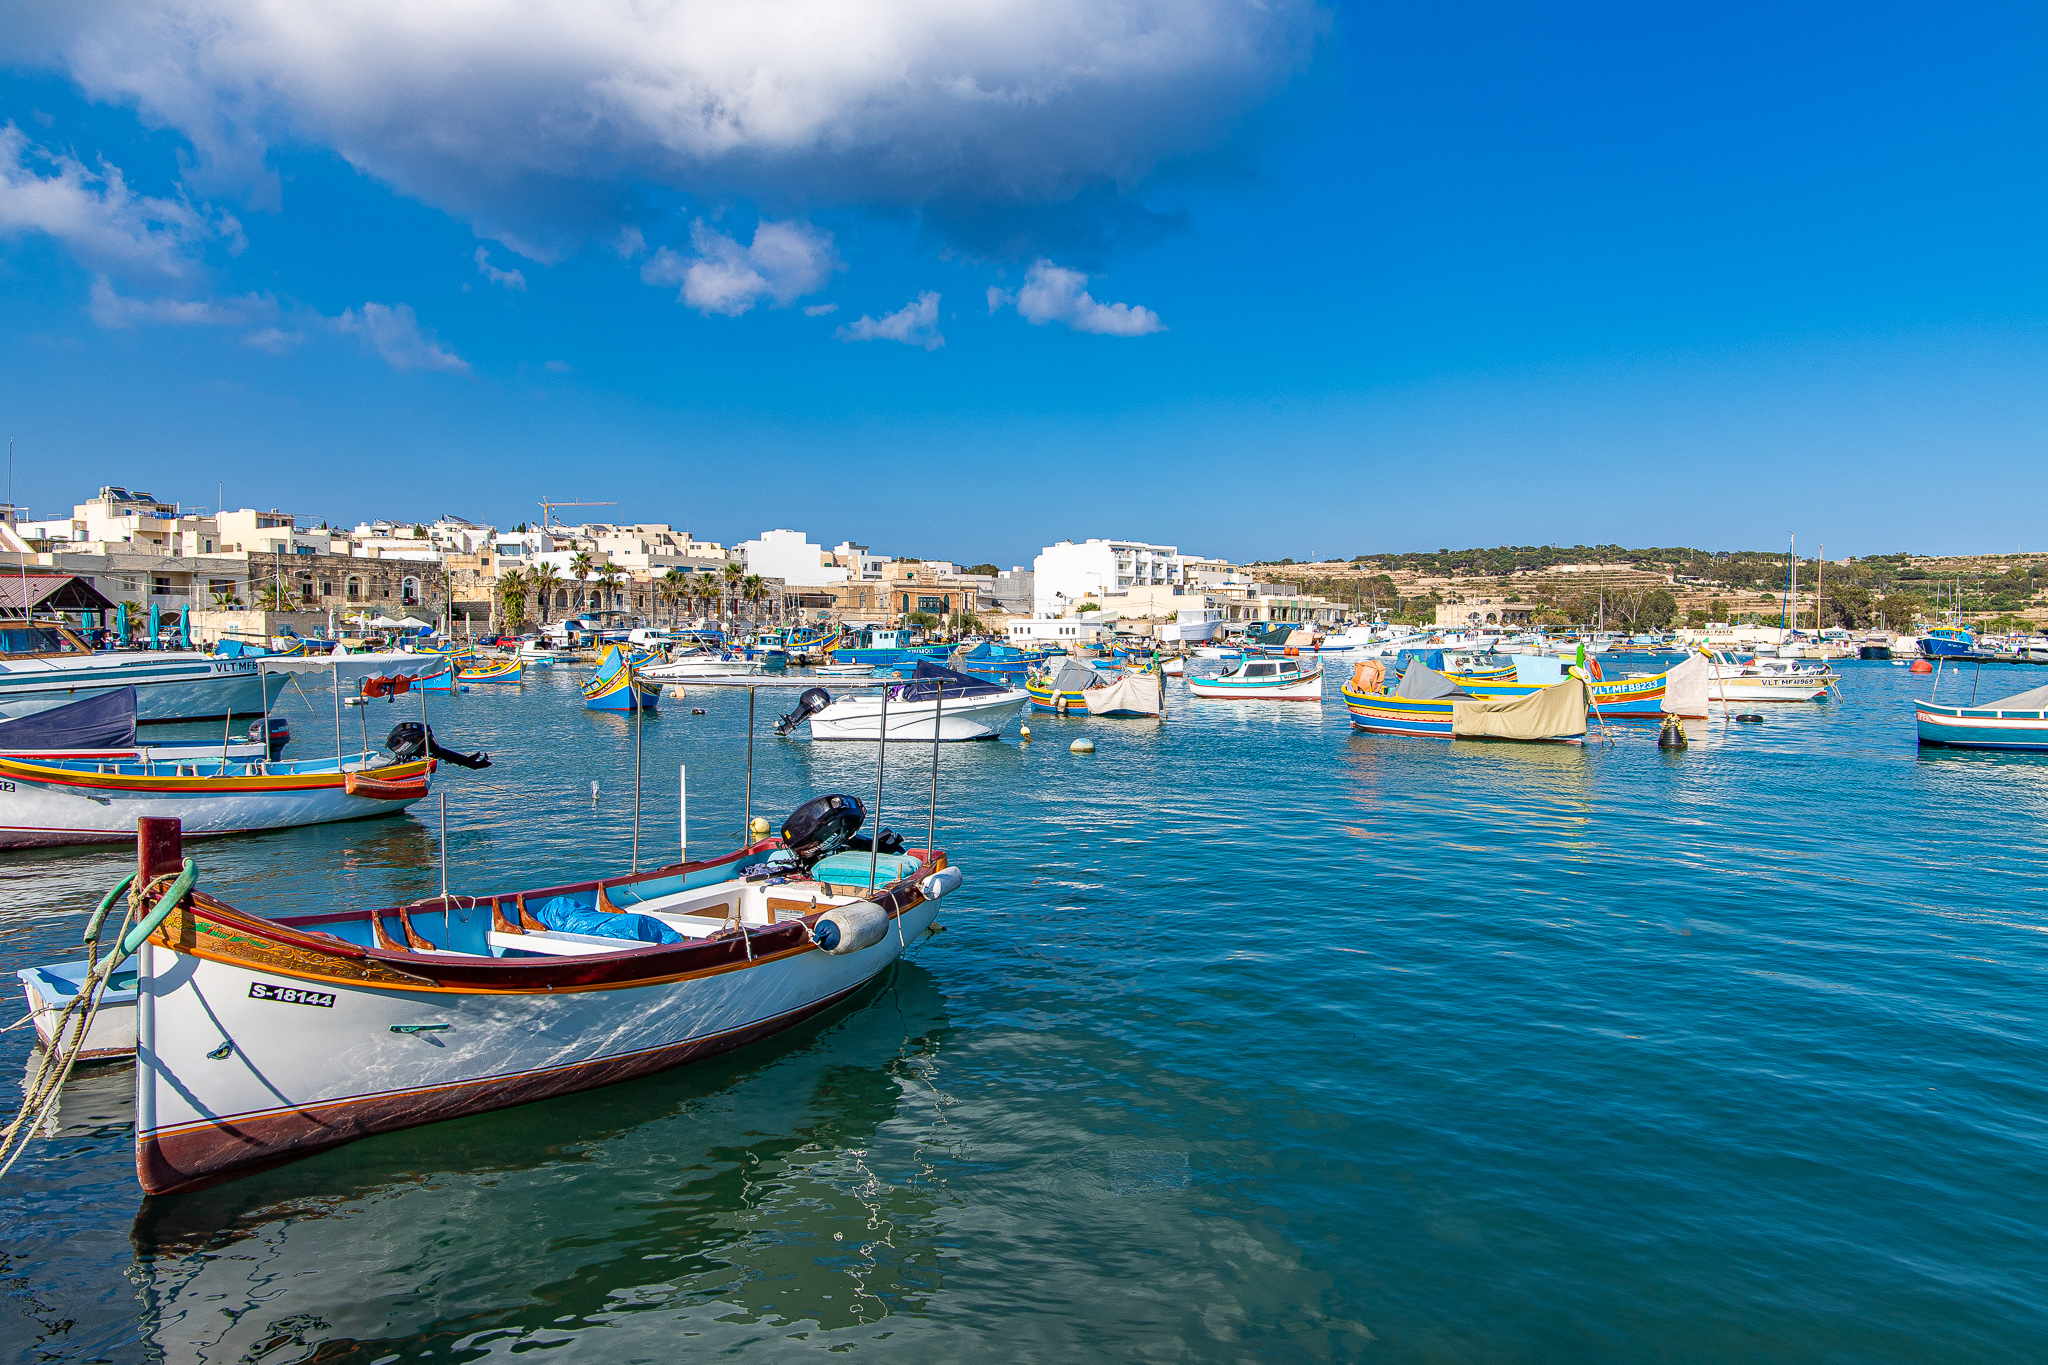 Fishing boats in the harbour